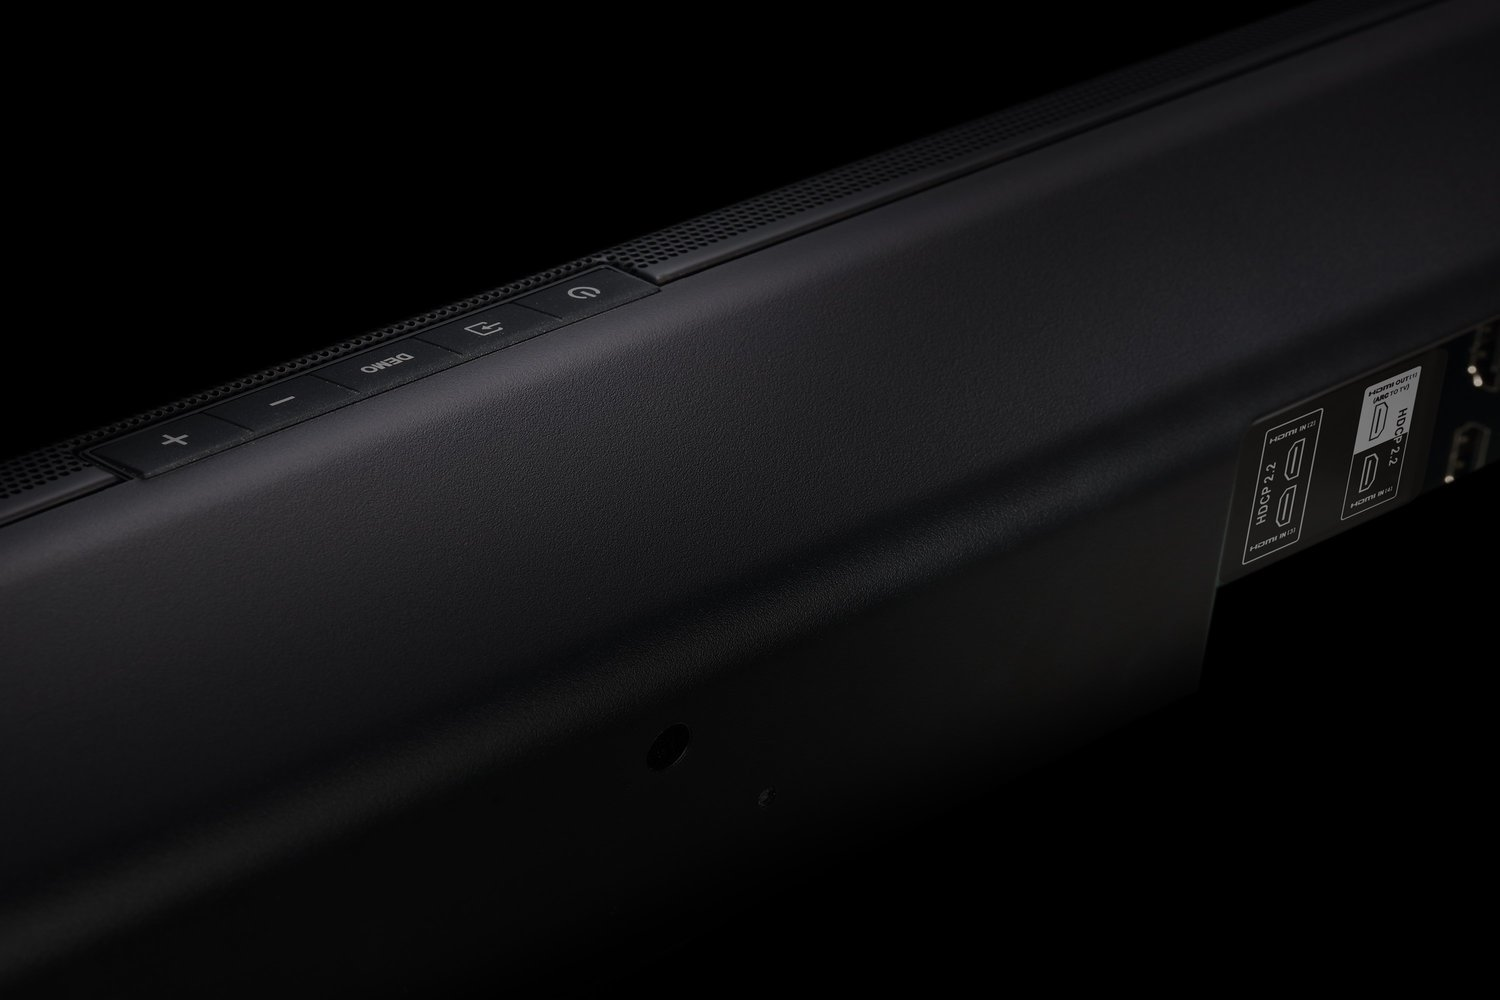 Shockwafe Ultra 92 Sse With Dolby Atmos Soundbar Dual Wireless Whole Home Surround Sound Wiring Connect